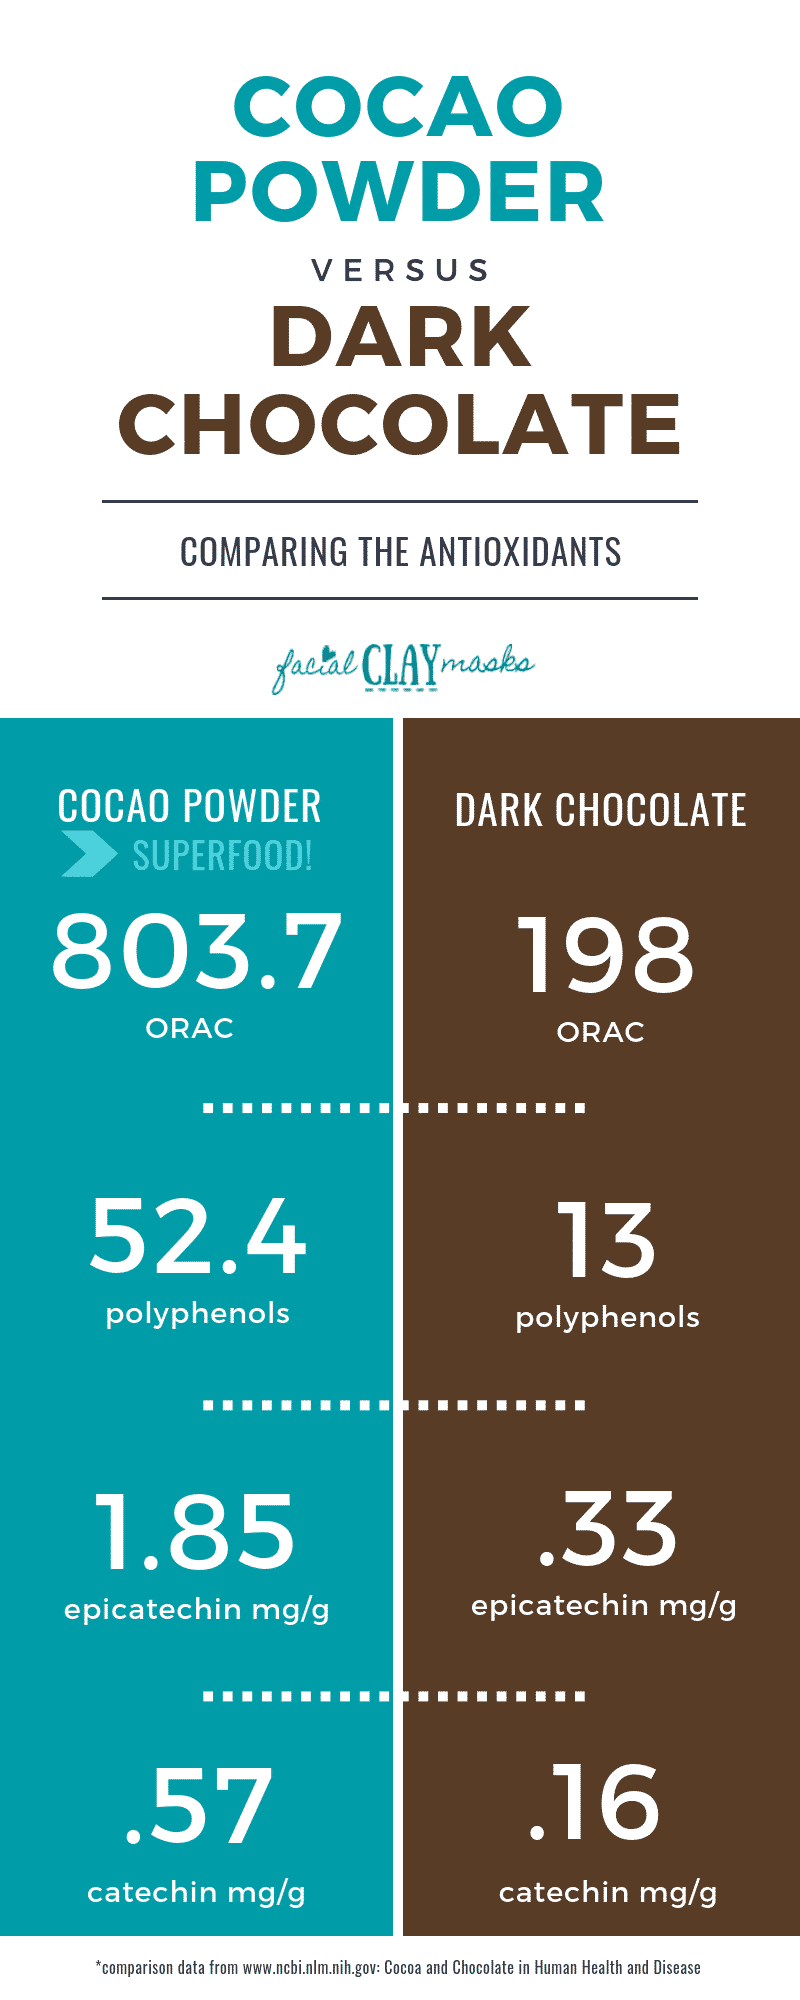 Cocao VS Dark Chocolate Antioxidant Comparison